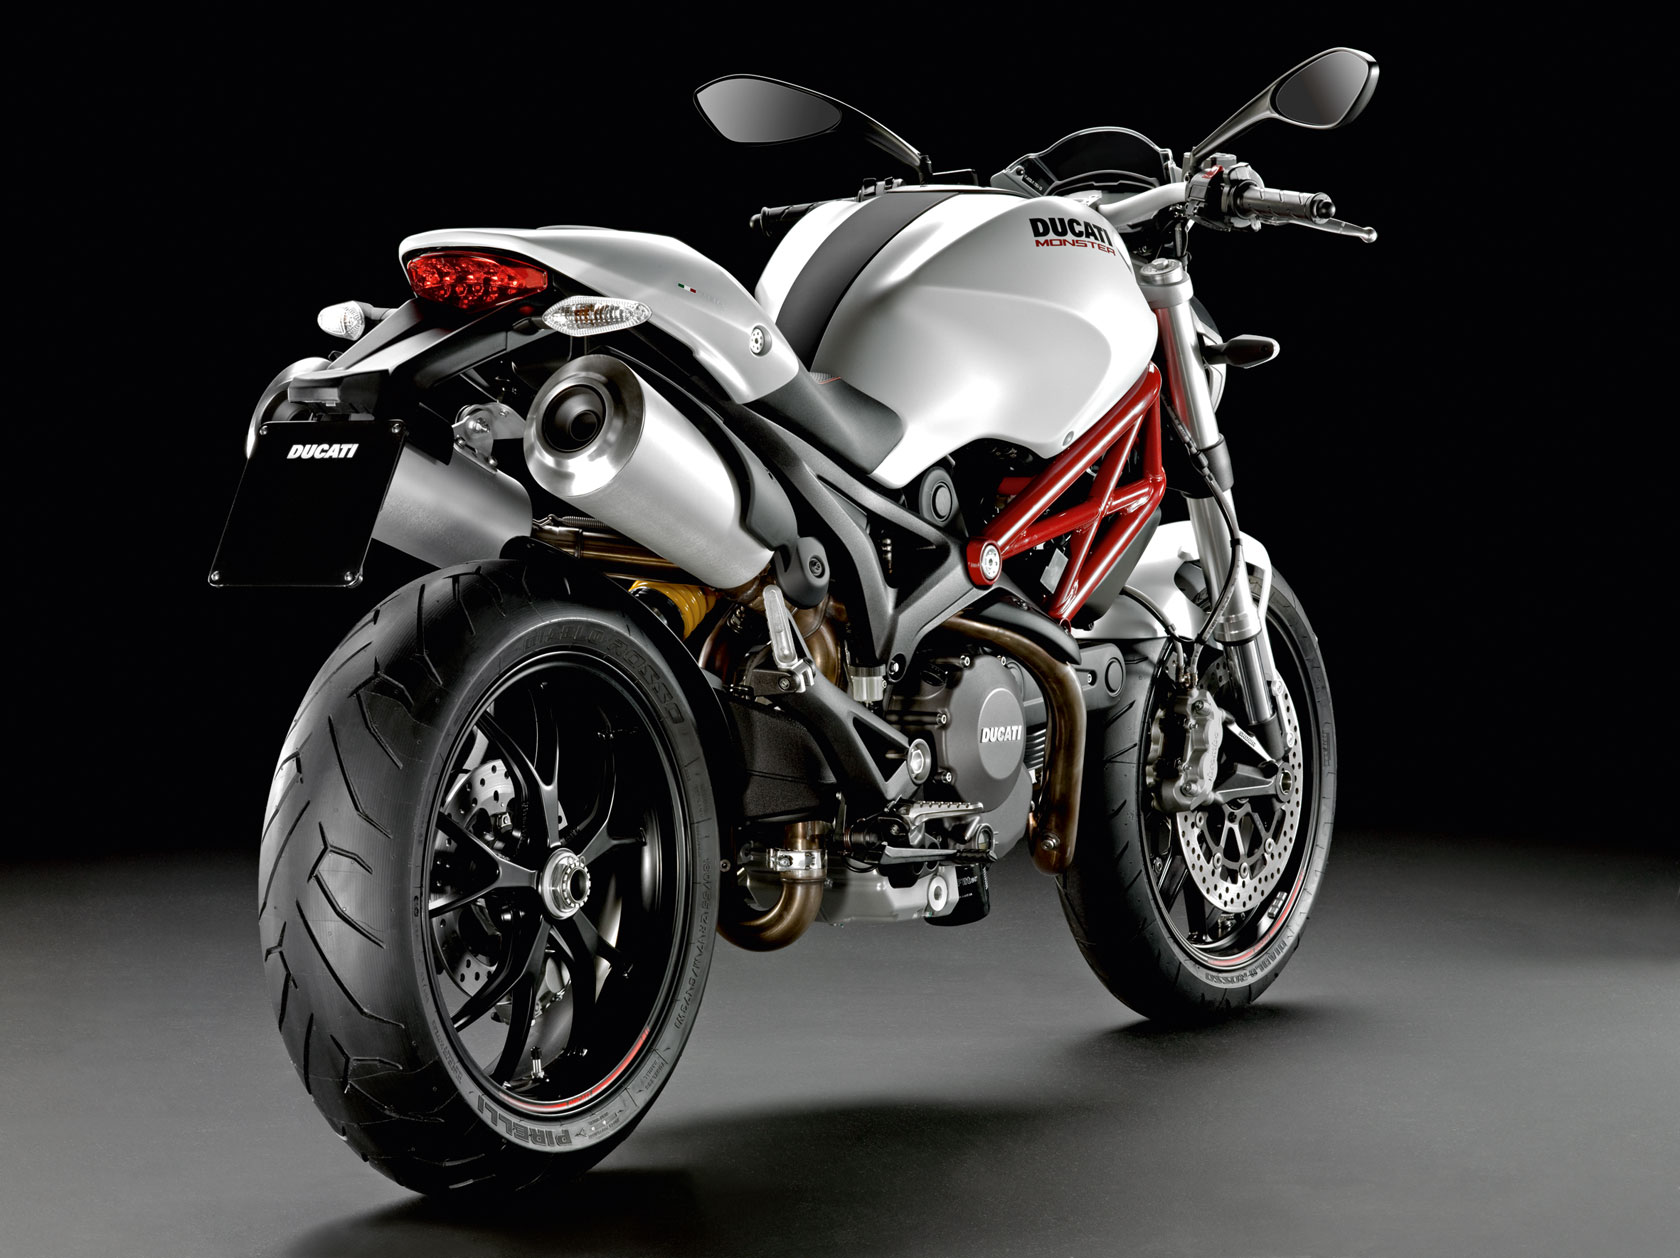 Ducati Hypermotard 796 images #79591